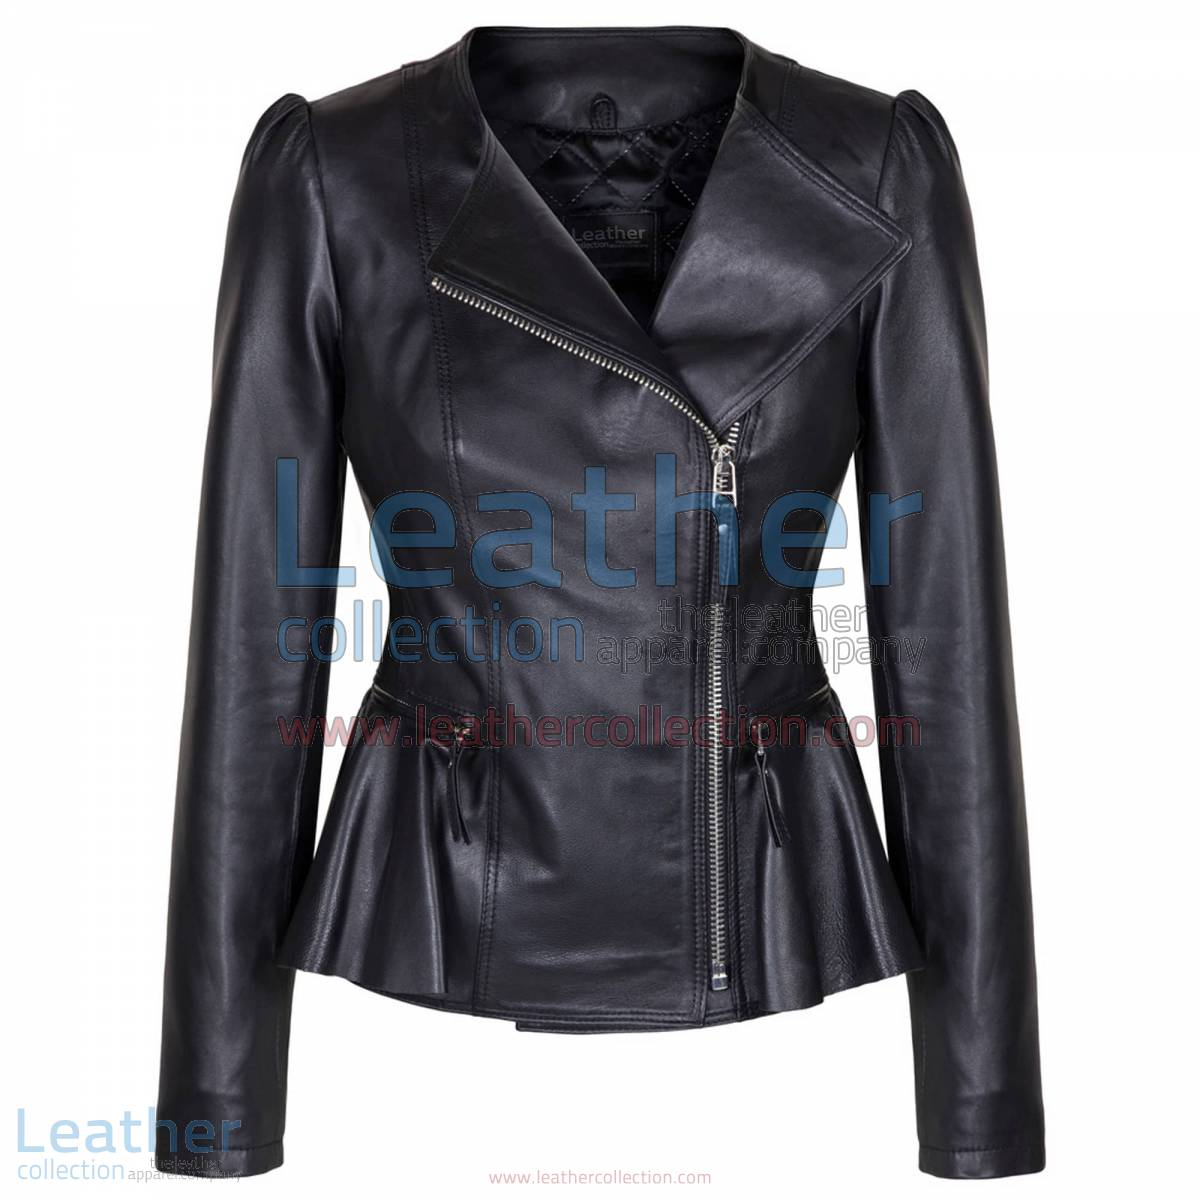 The Empress Fashion Leather Jacket For Ladies | leather jacket for ladies,fashion leather